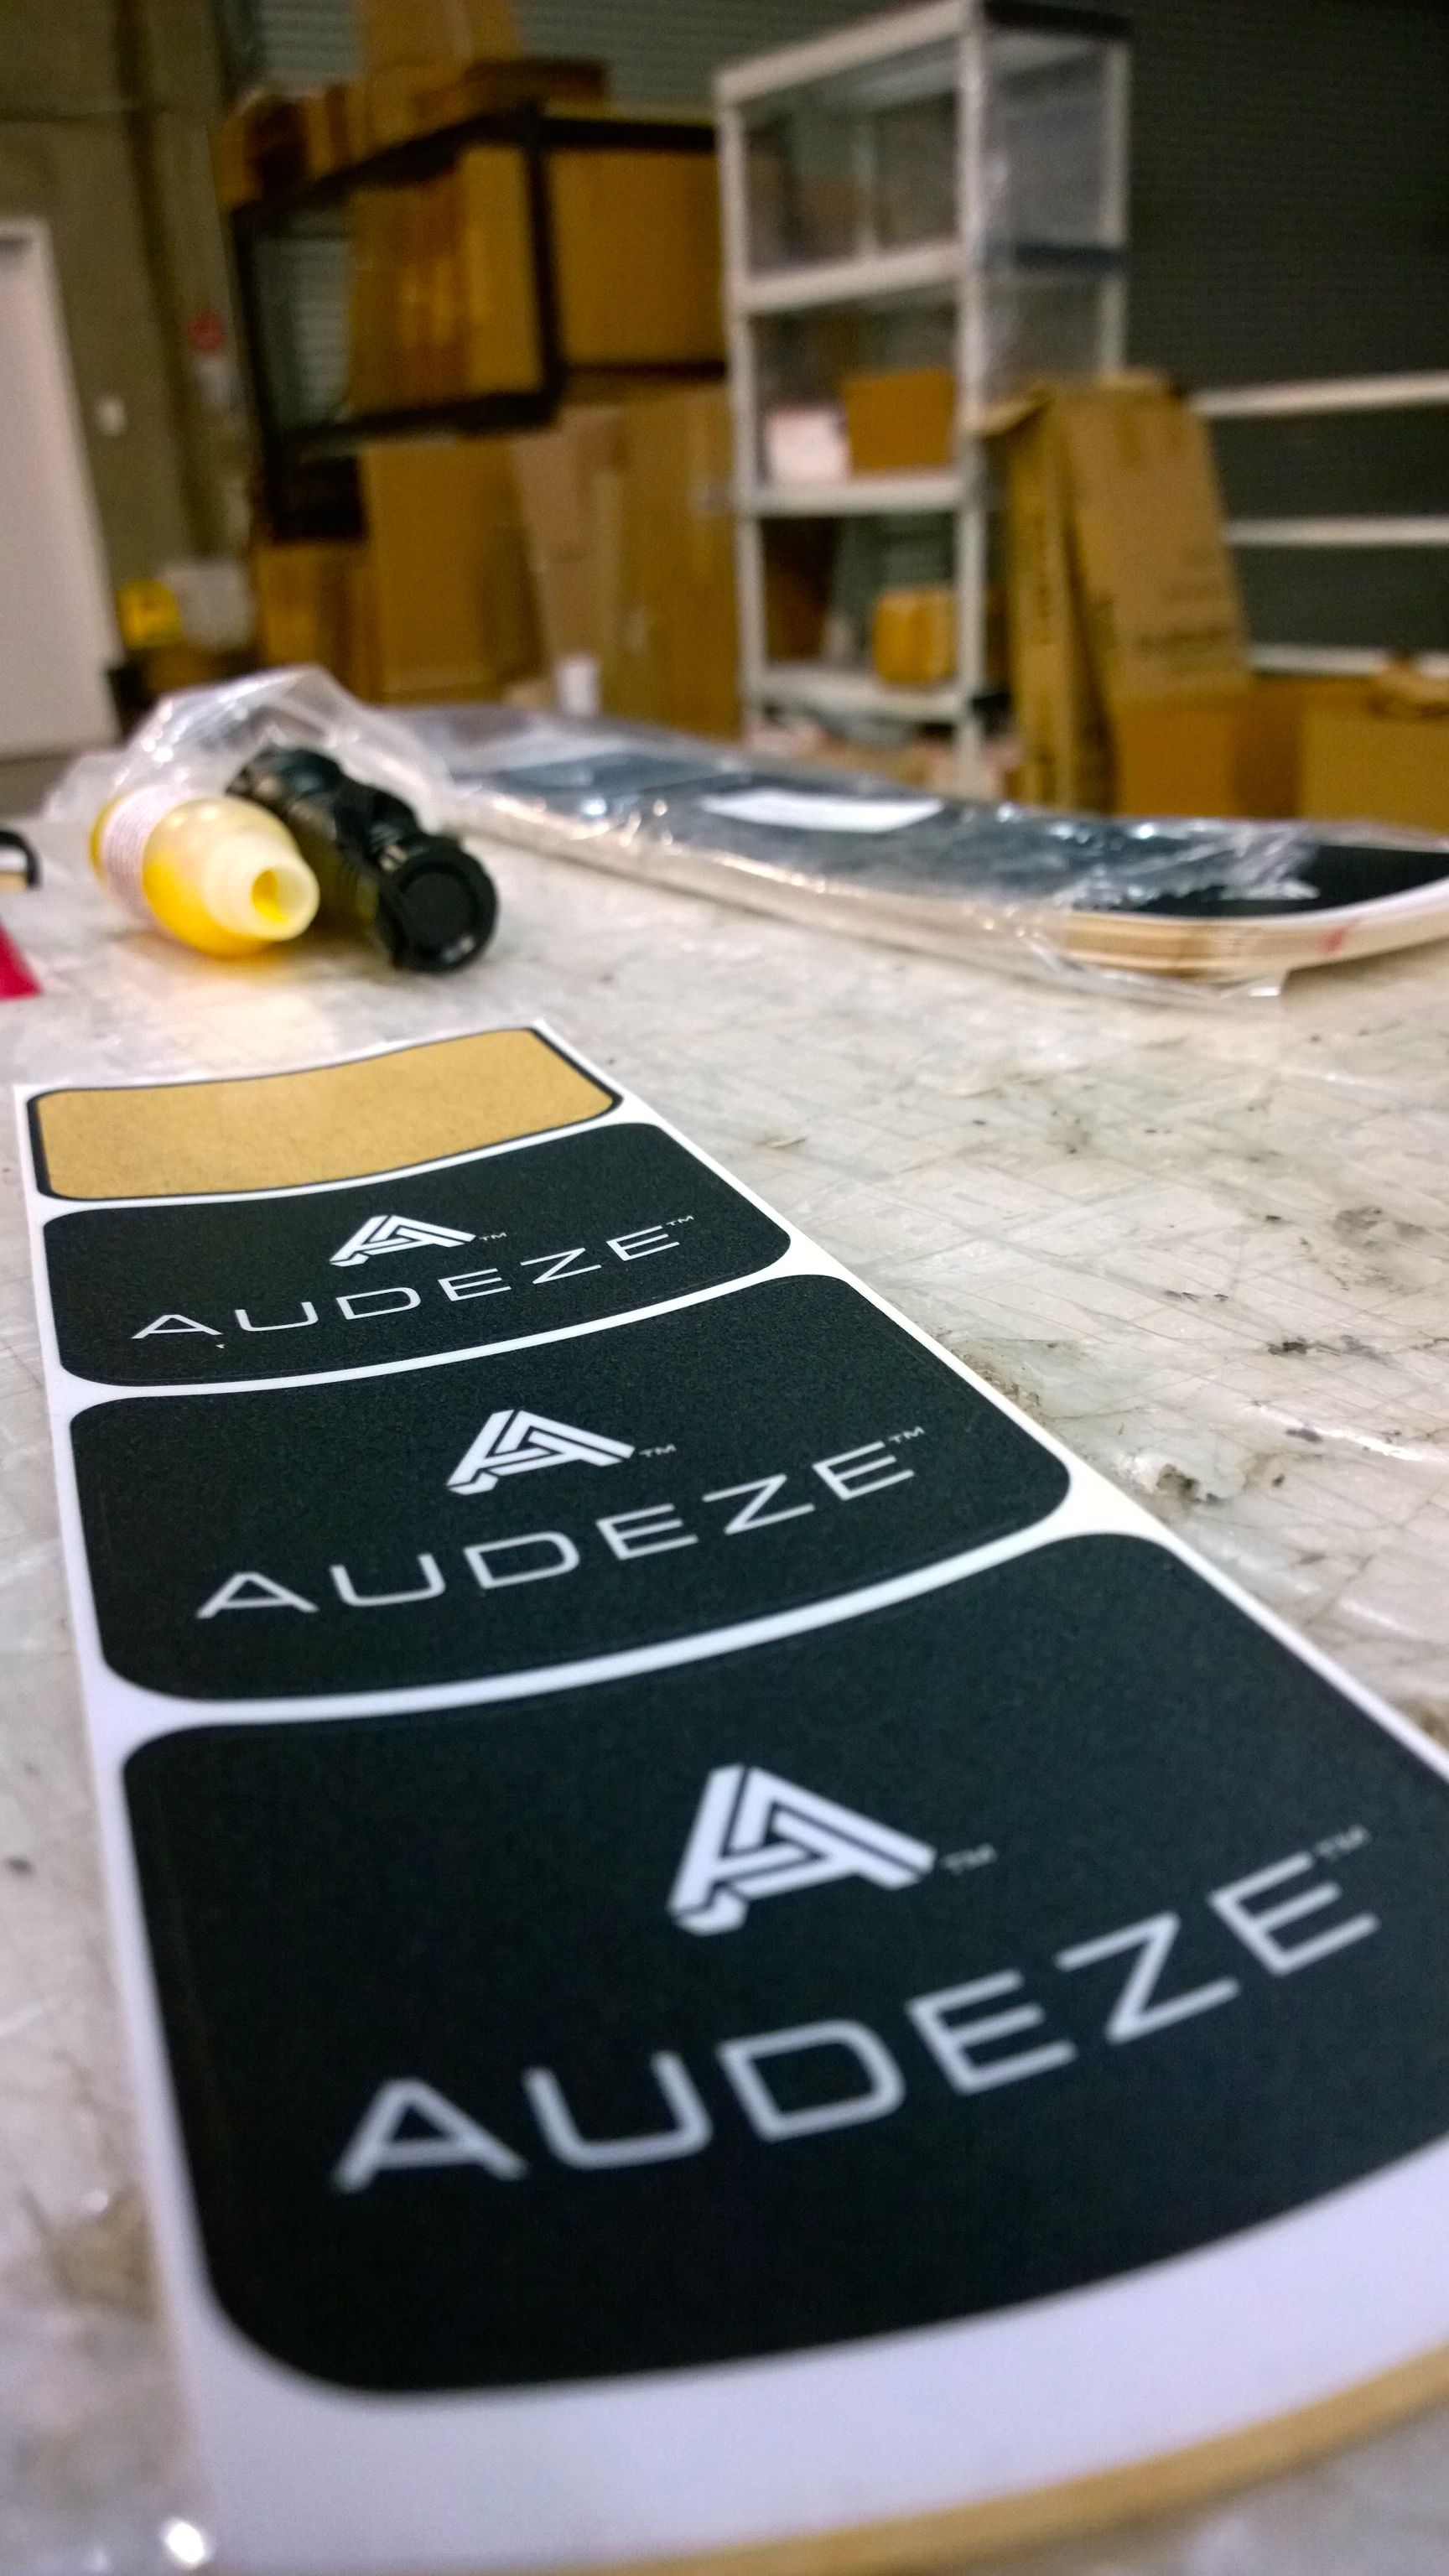 Audeze Logo Sticker Font Logo, Logo Sticker, Headphones, Stickers, Logos, Music Headphones, A Logo, Logo, Sticker